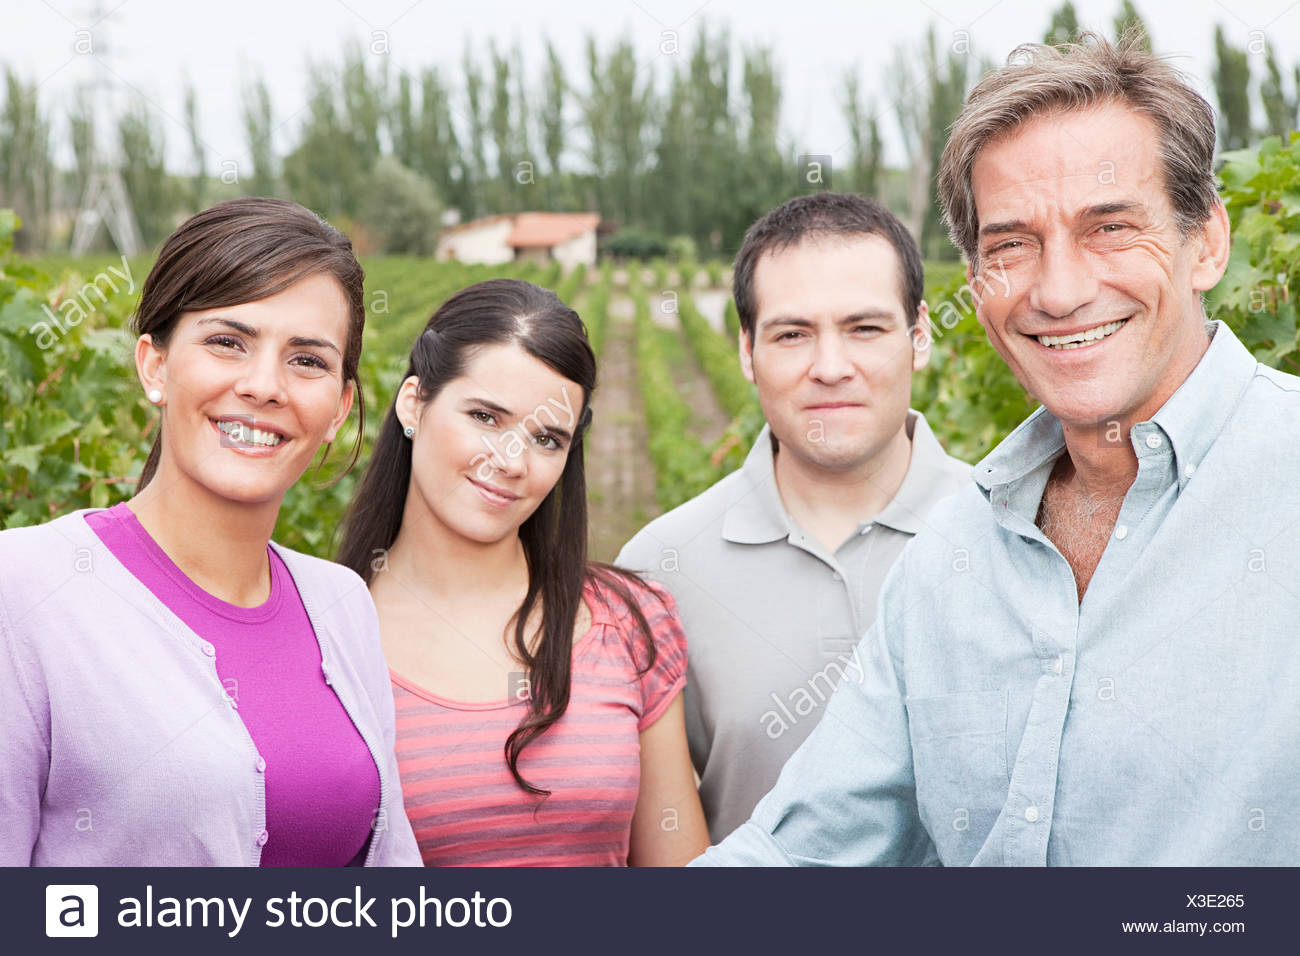 People in a vineyard - Stock Image